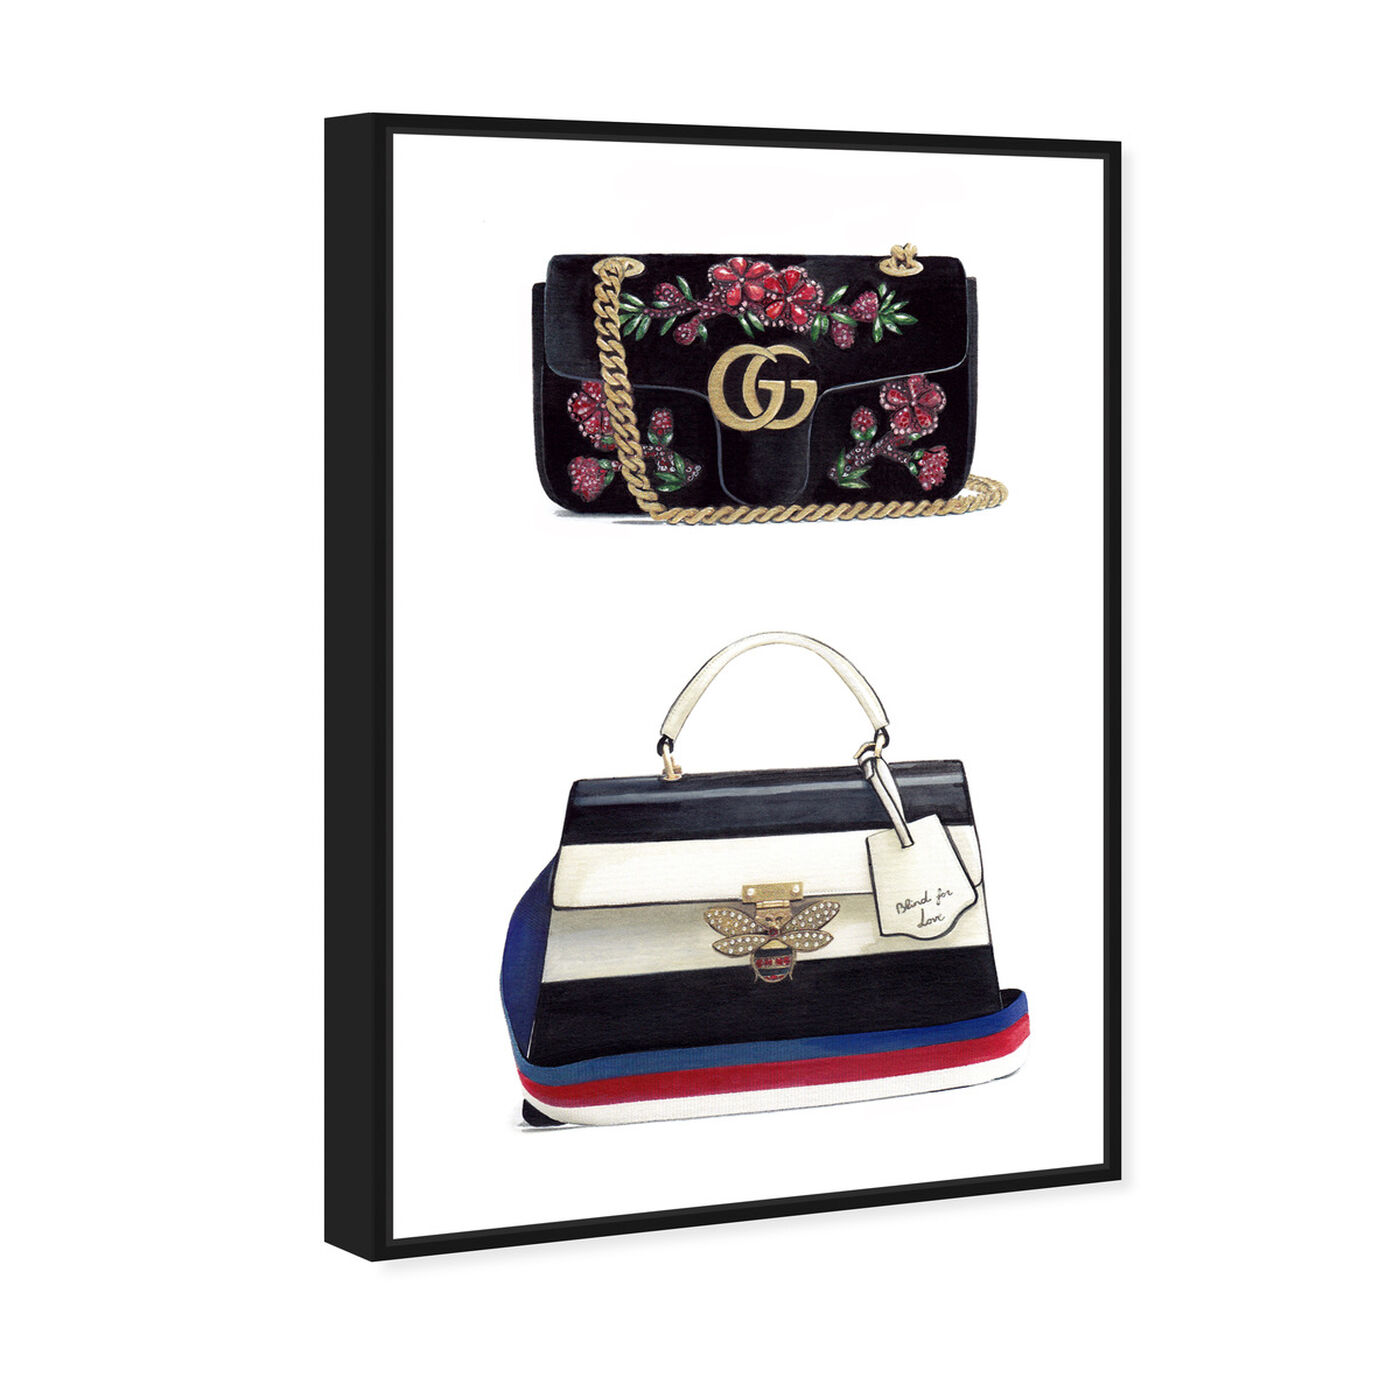 Angled view of Doll Memories - New Collection featuring fashion and glam and handbags art.